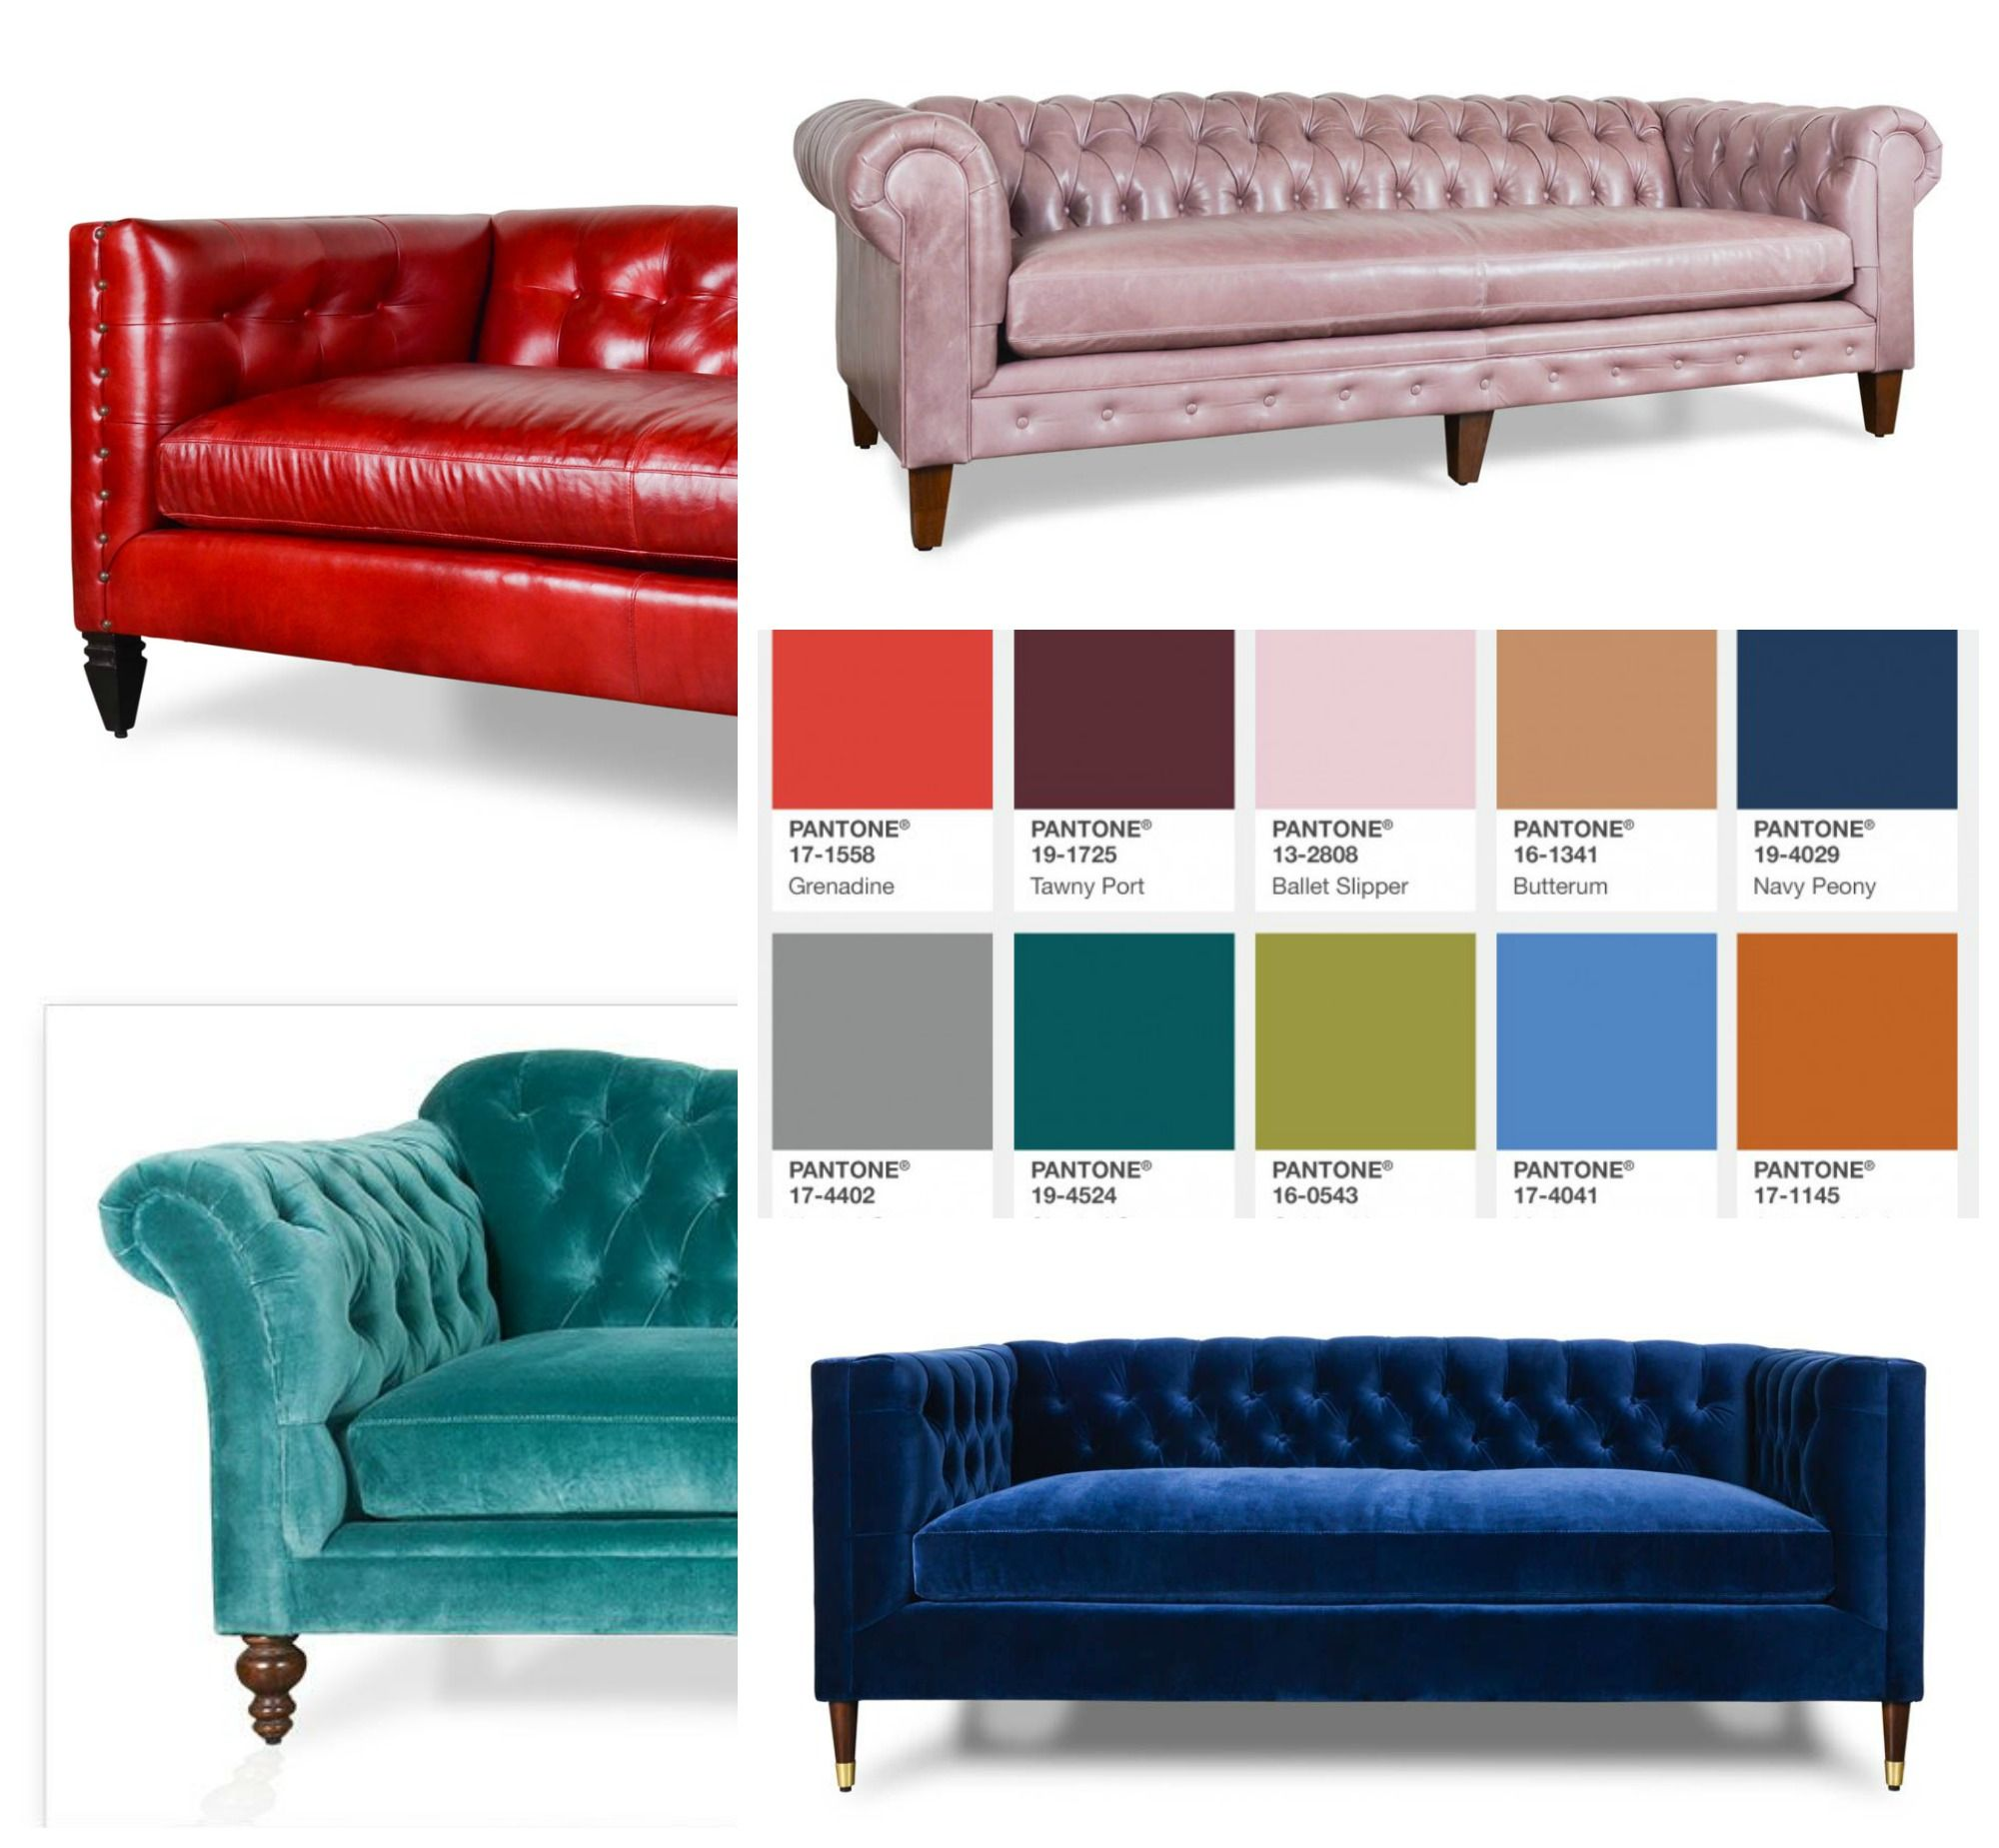 Some Fall Color Inspiration In Leather + Velvet #Leather #Leathersofa